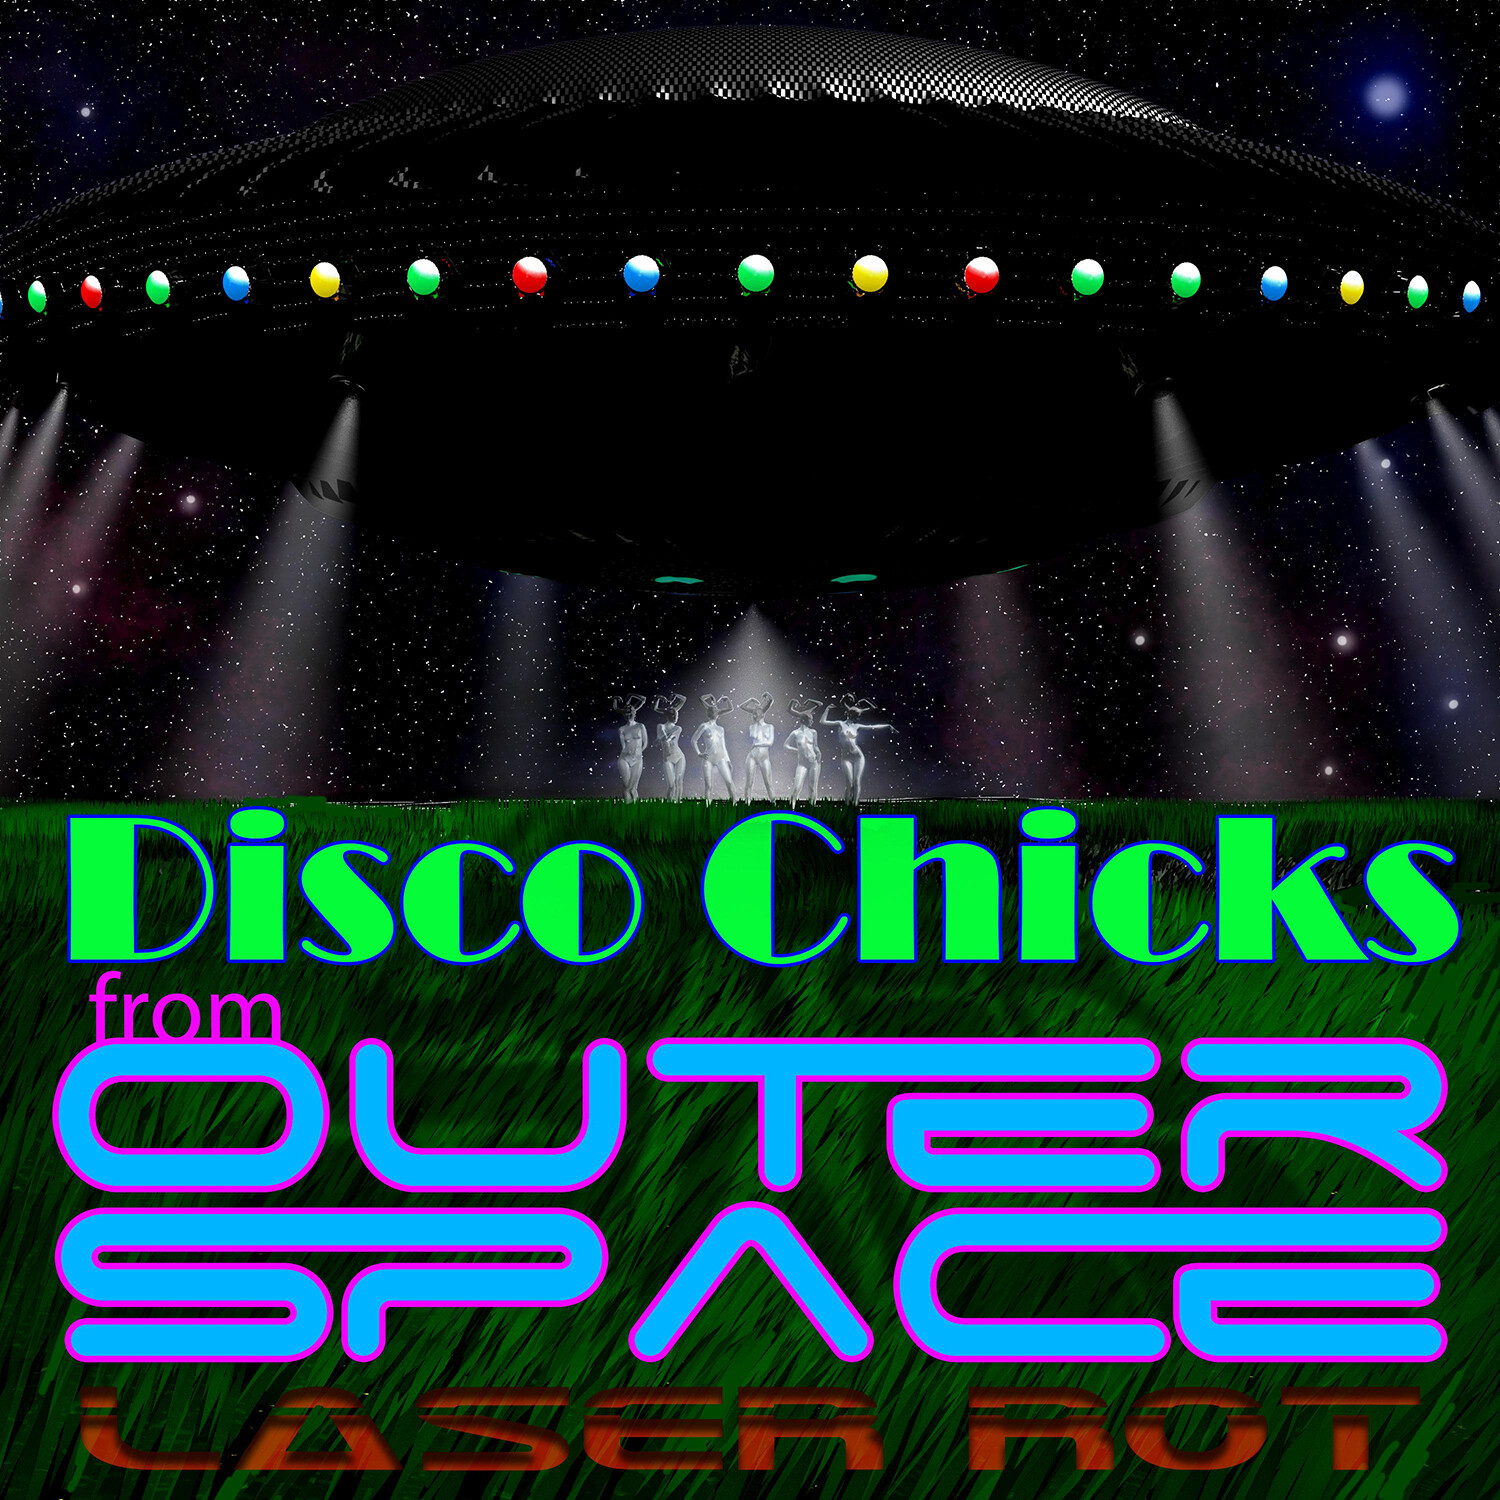 Disco Chicks From Outer Space (Album Cover Artwork)